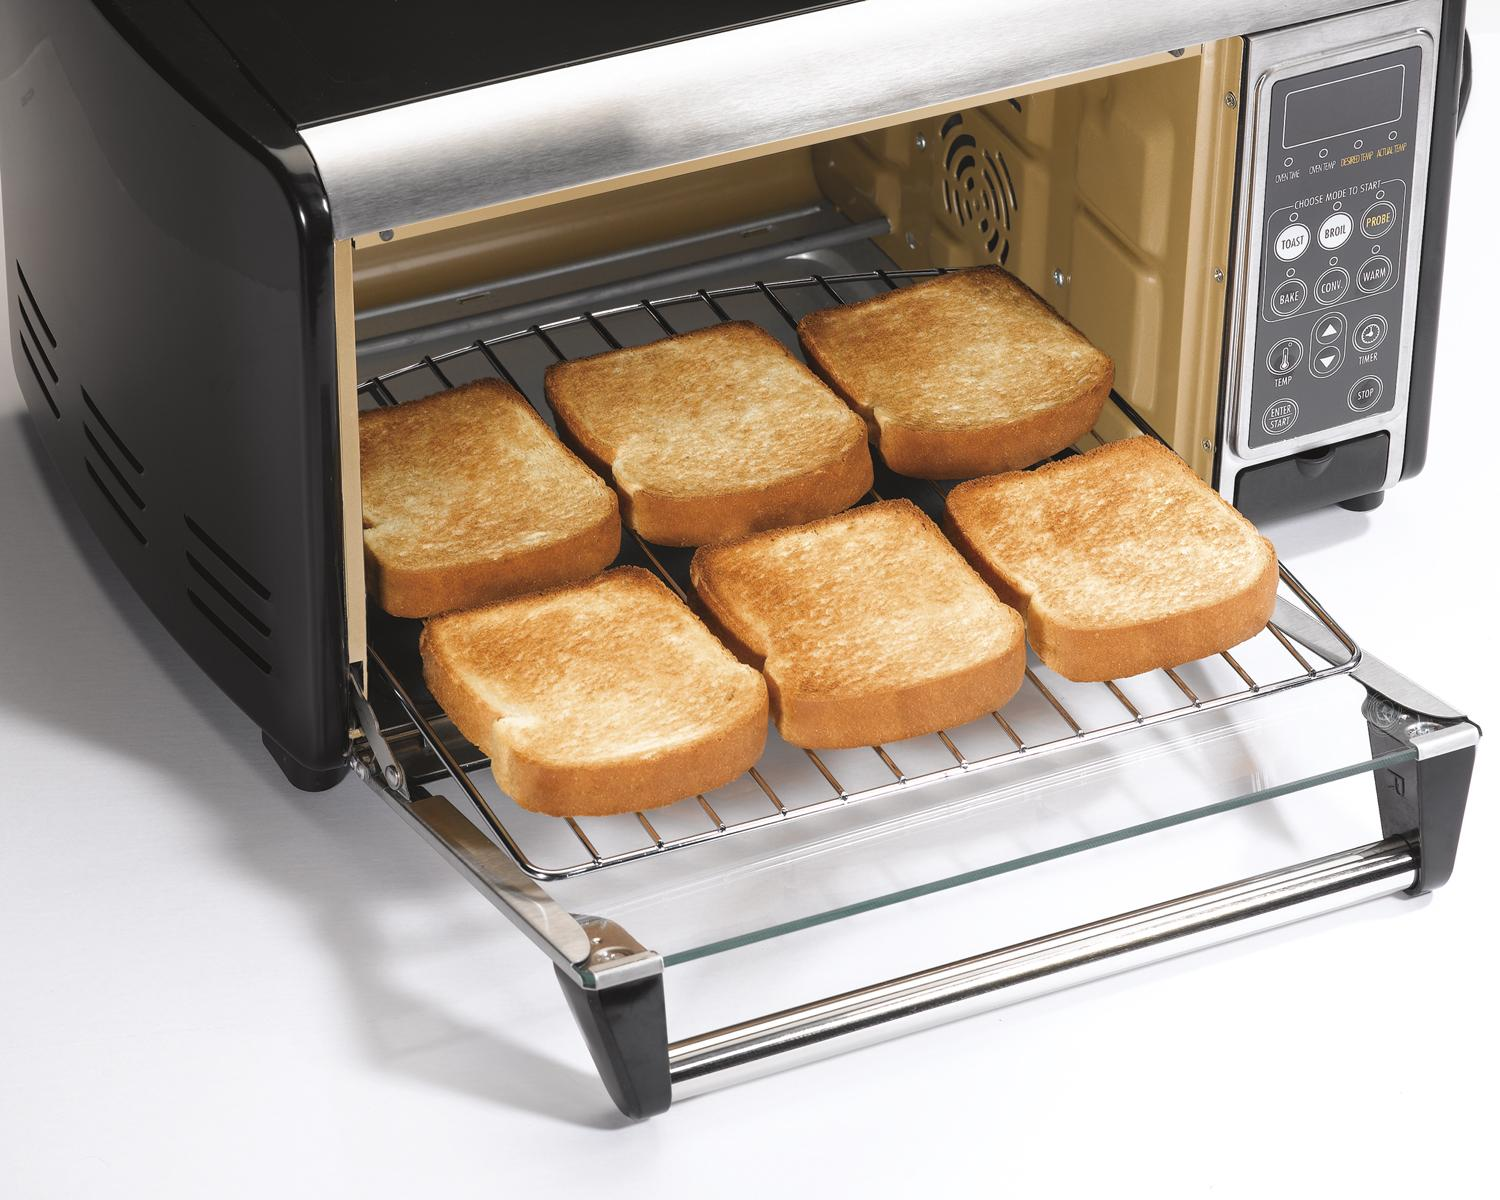 toasters ovens convection cuisinart black pizza best rated reviews ...